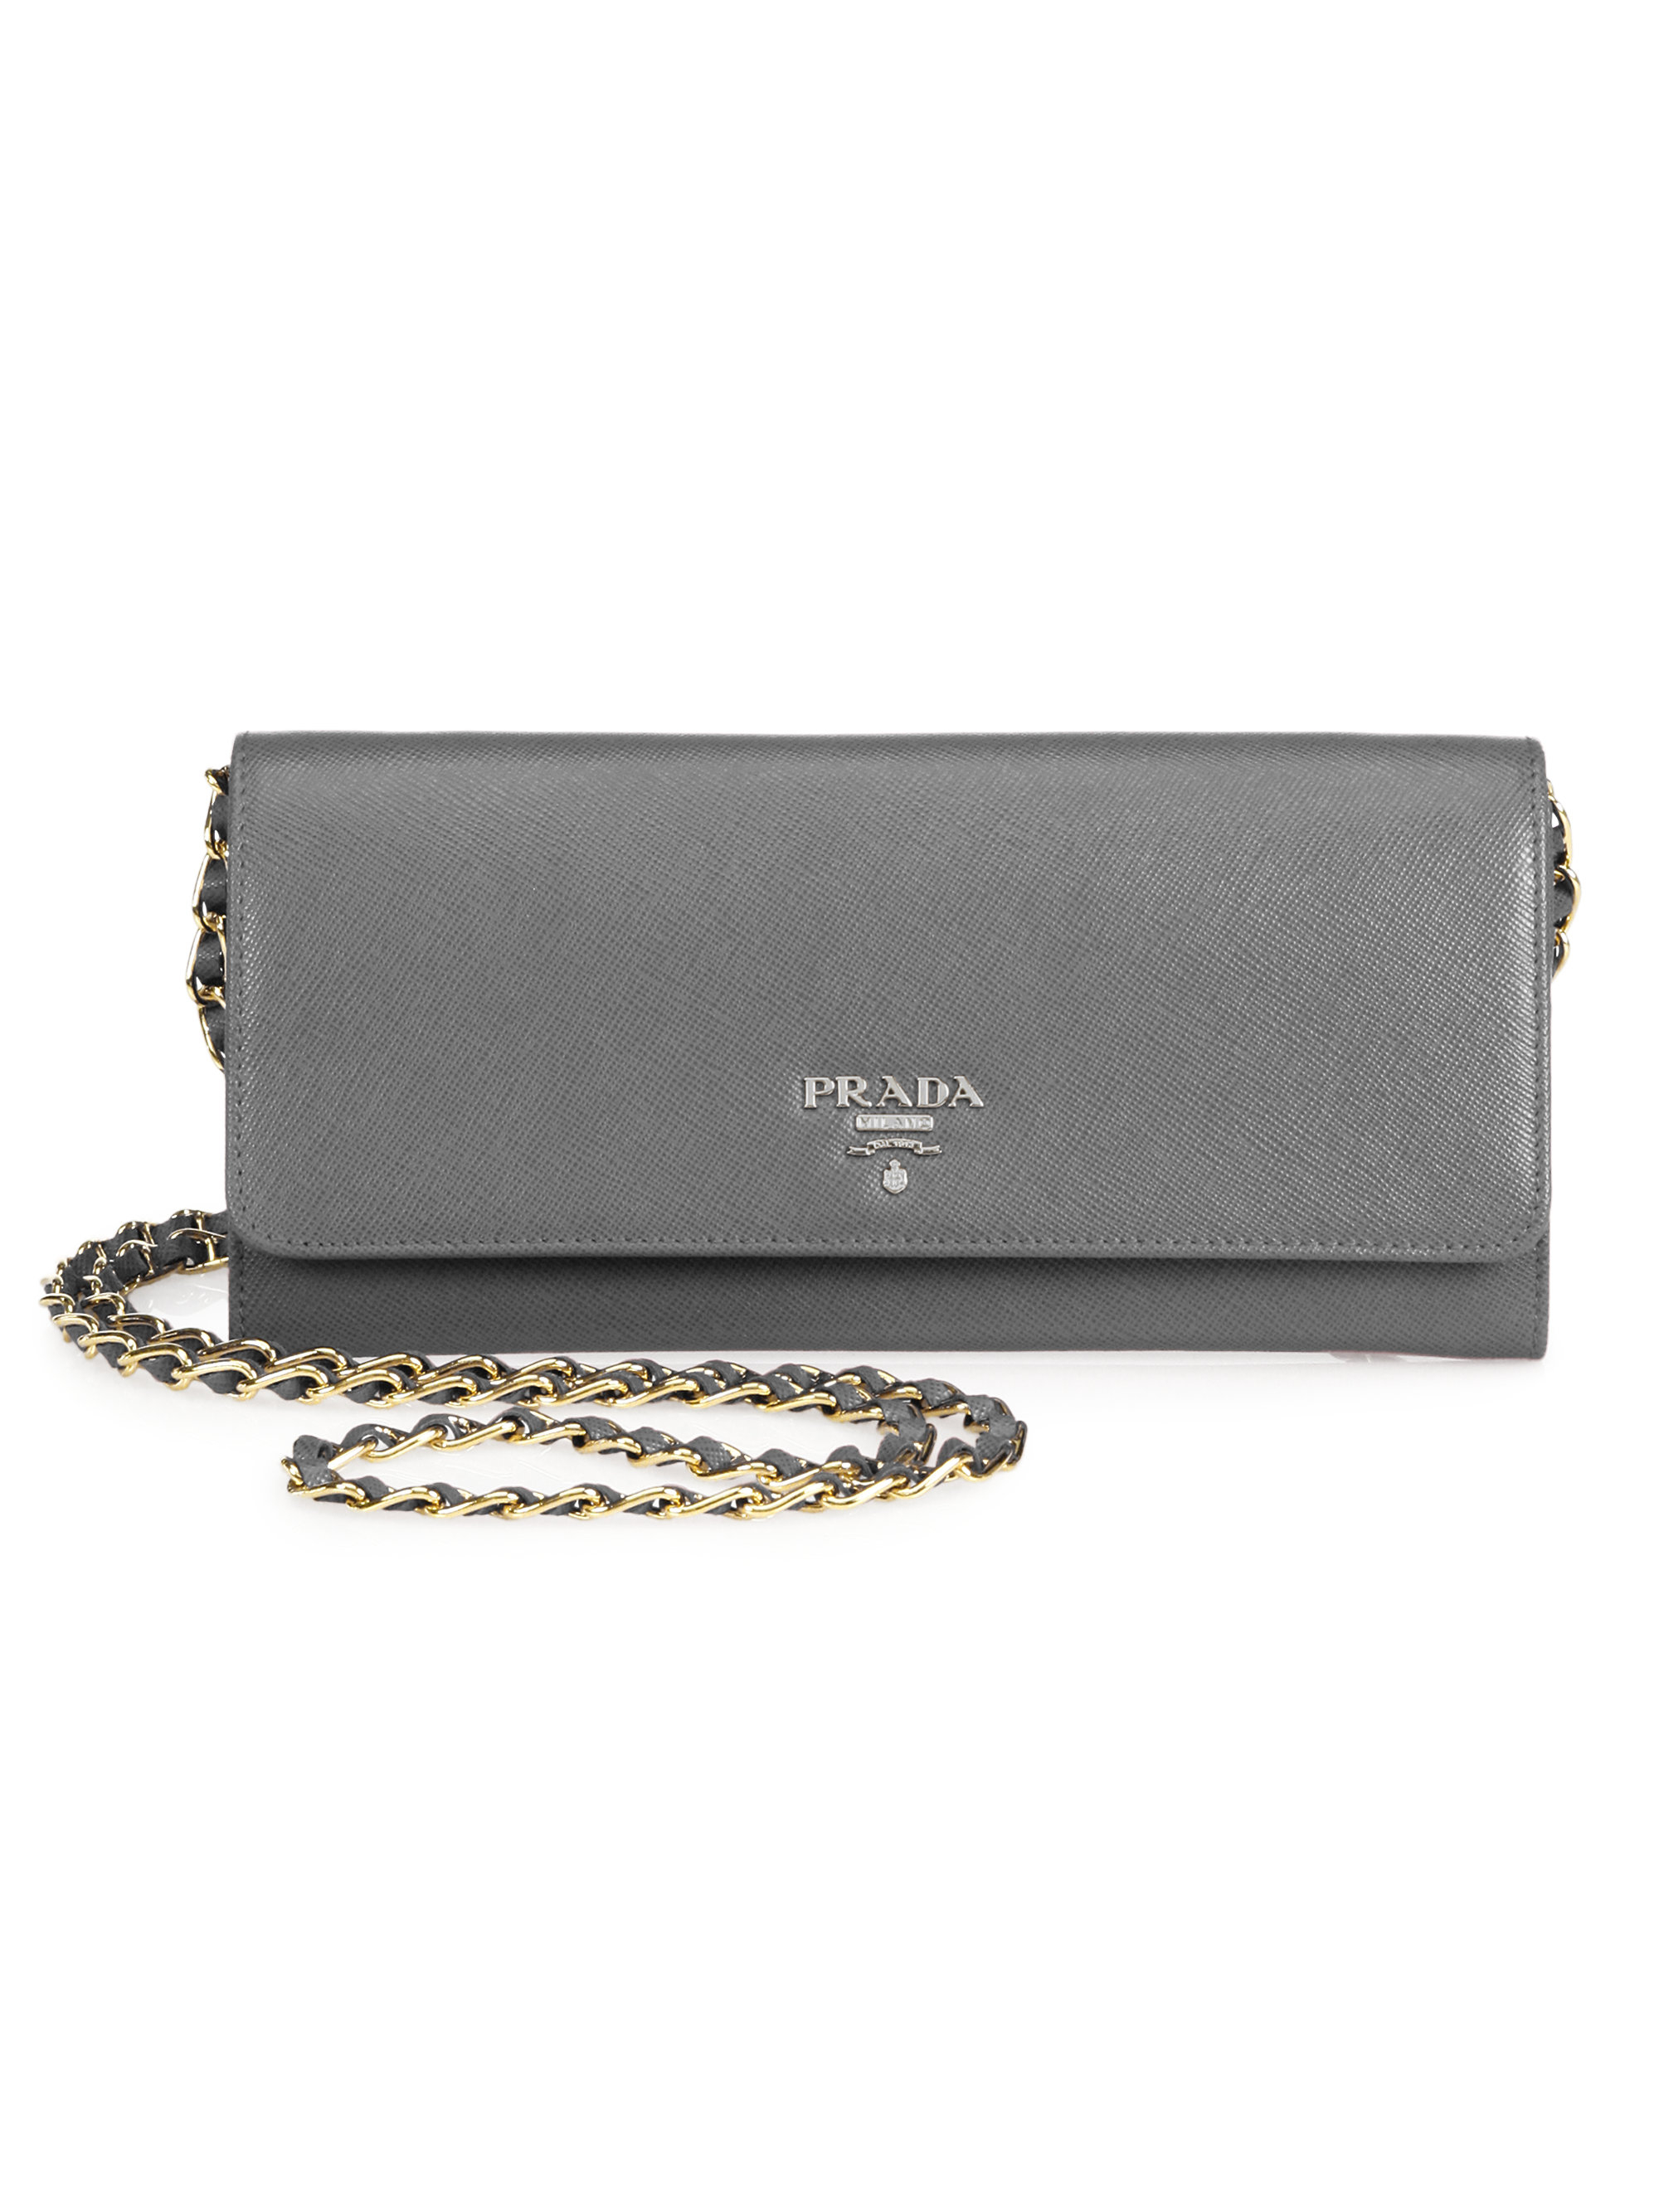 prada bags sale online - Prada Saffiano Metal Oro Chain Wallet in Gray (MARMO) | Lyst